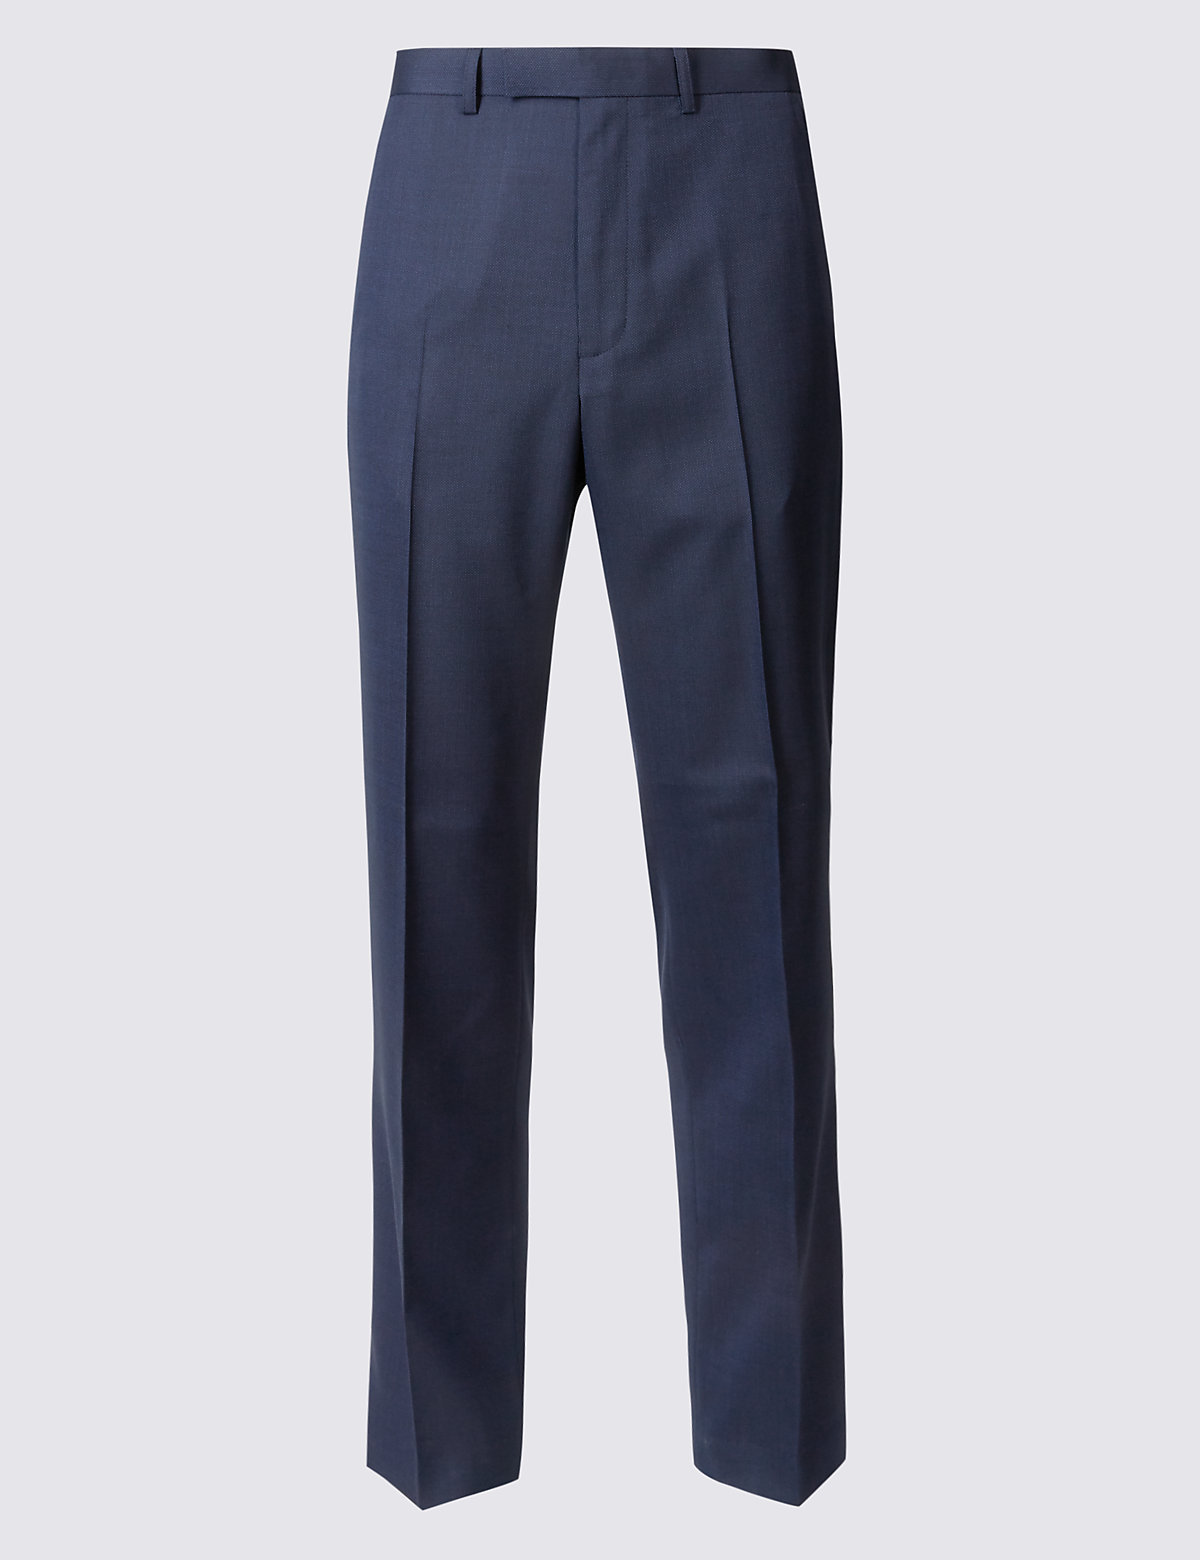 Marks & Spencer Indigo Tailored Fit Trousers